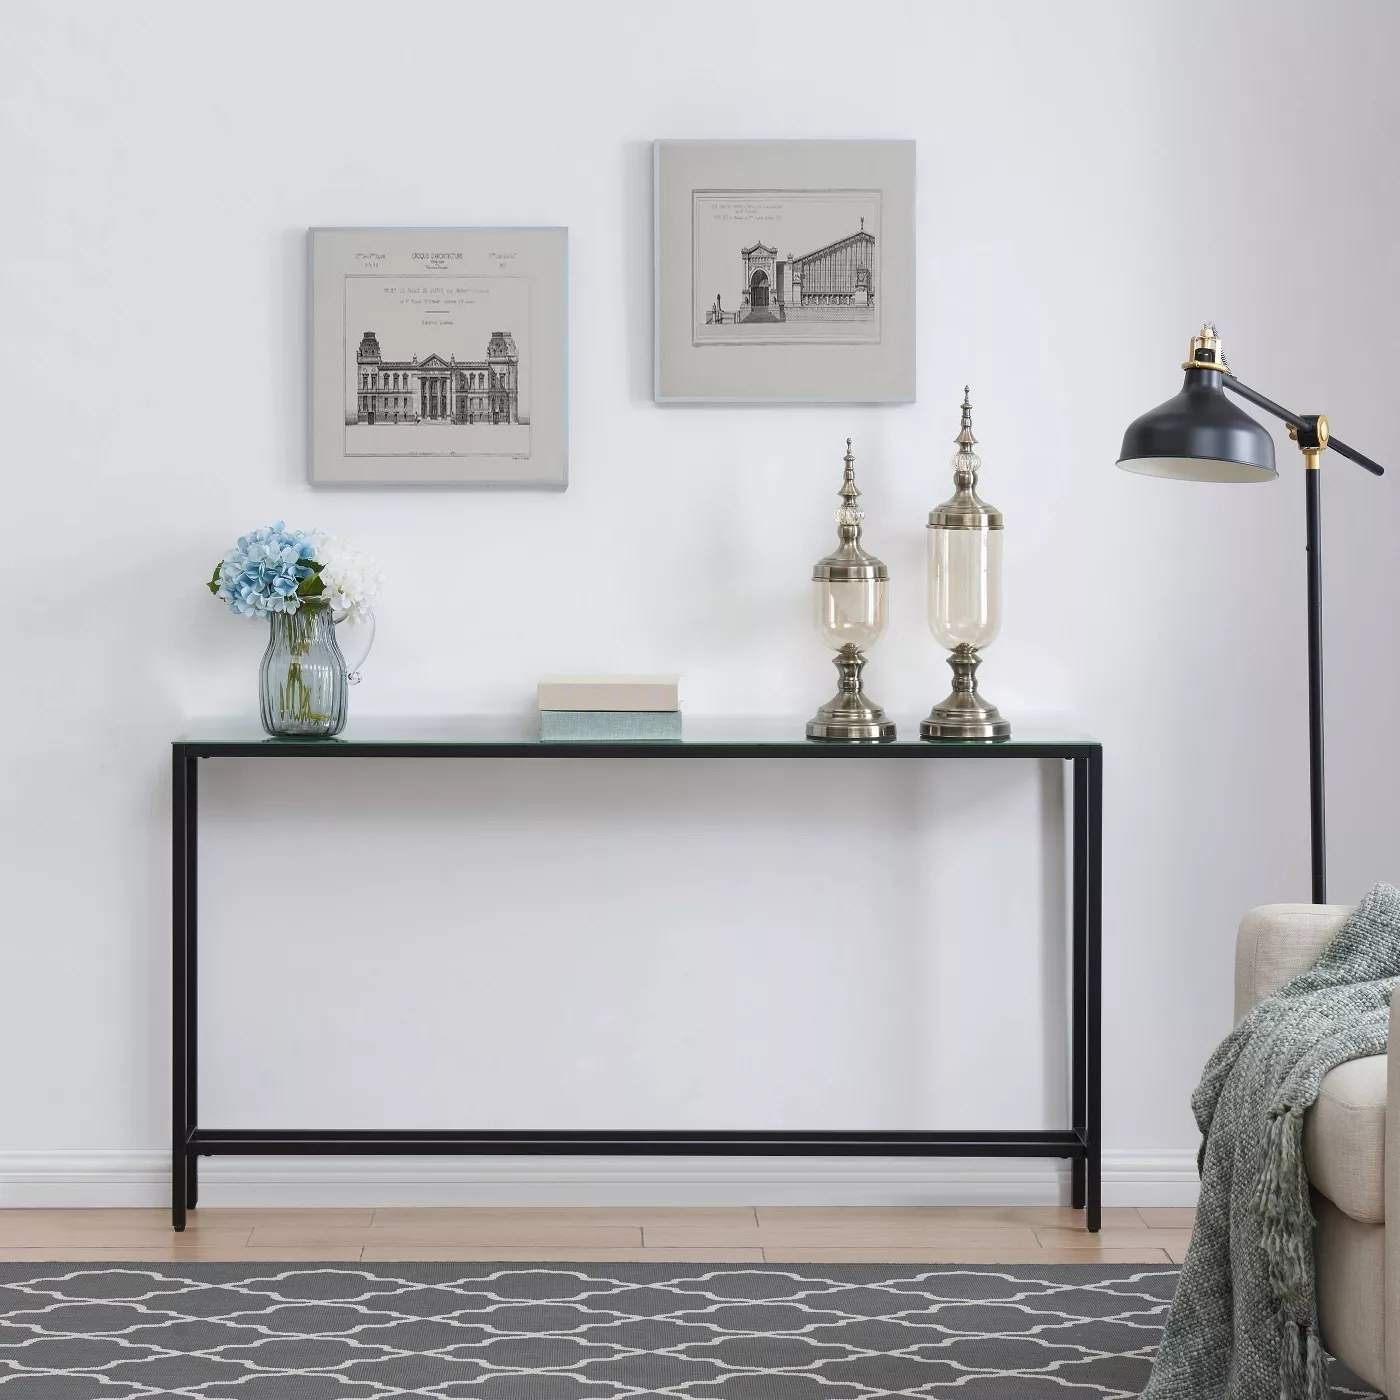 The console table with a black frame and glass top